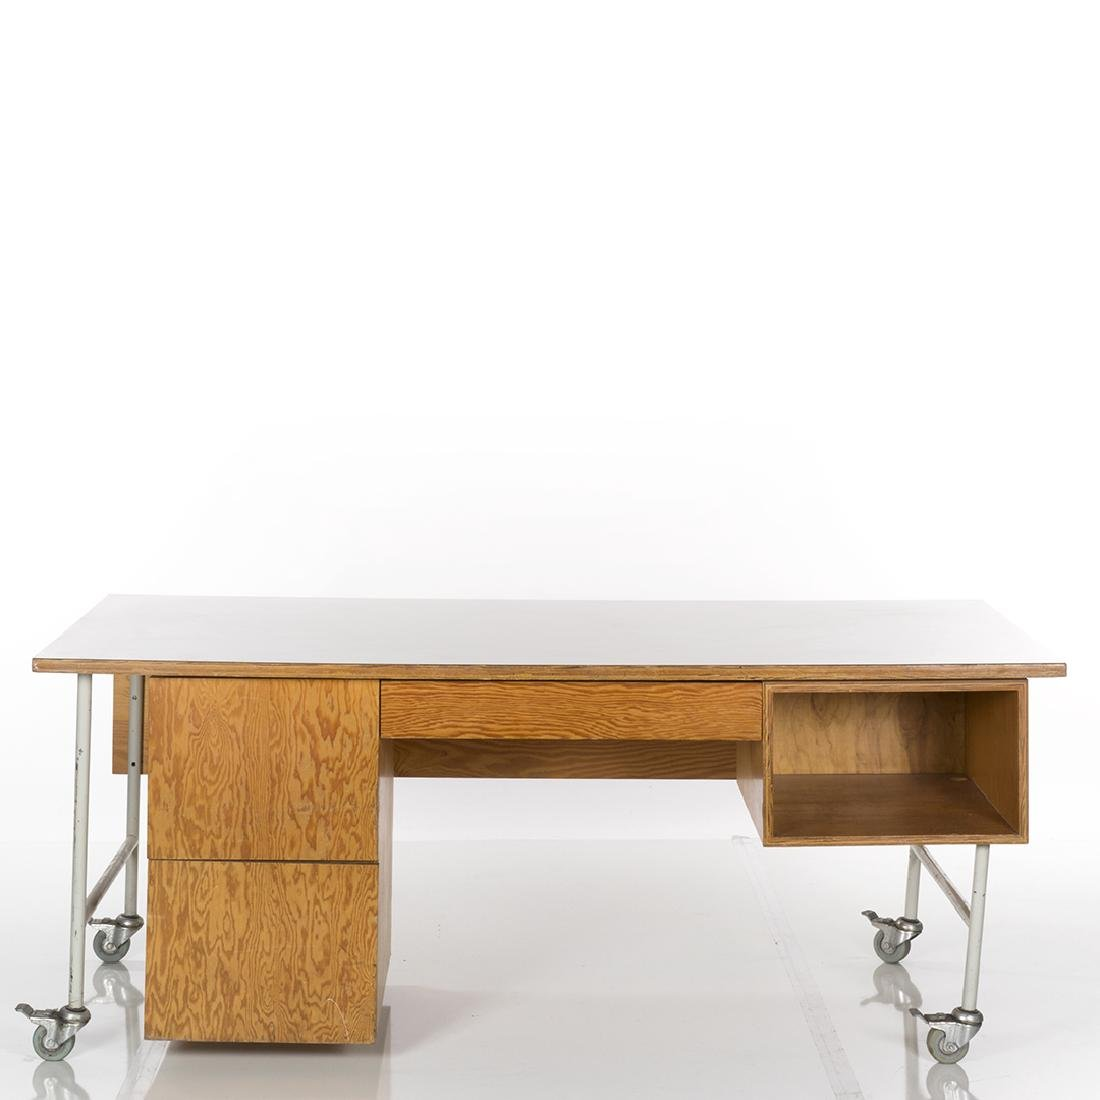 Dutch Industrial Desk - 2